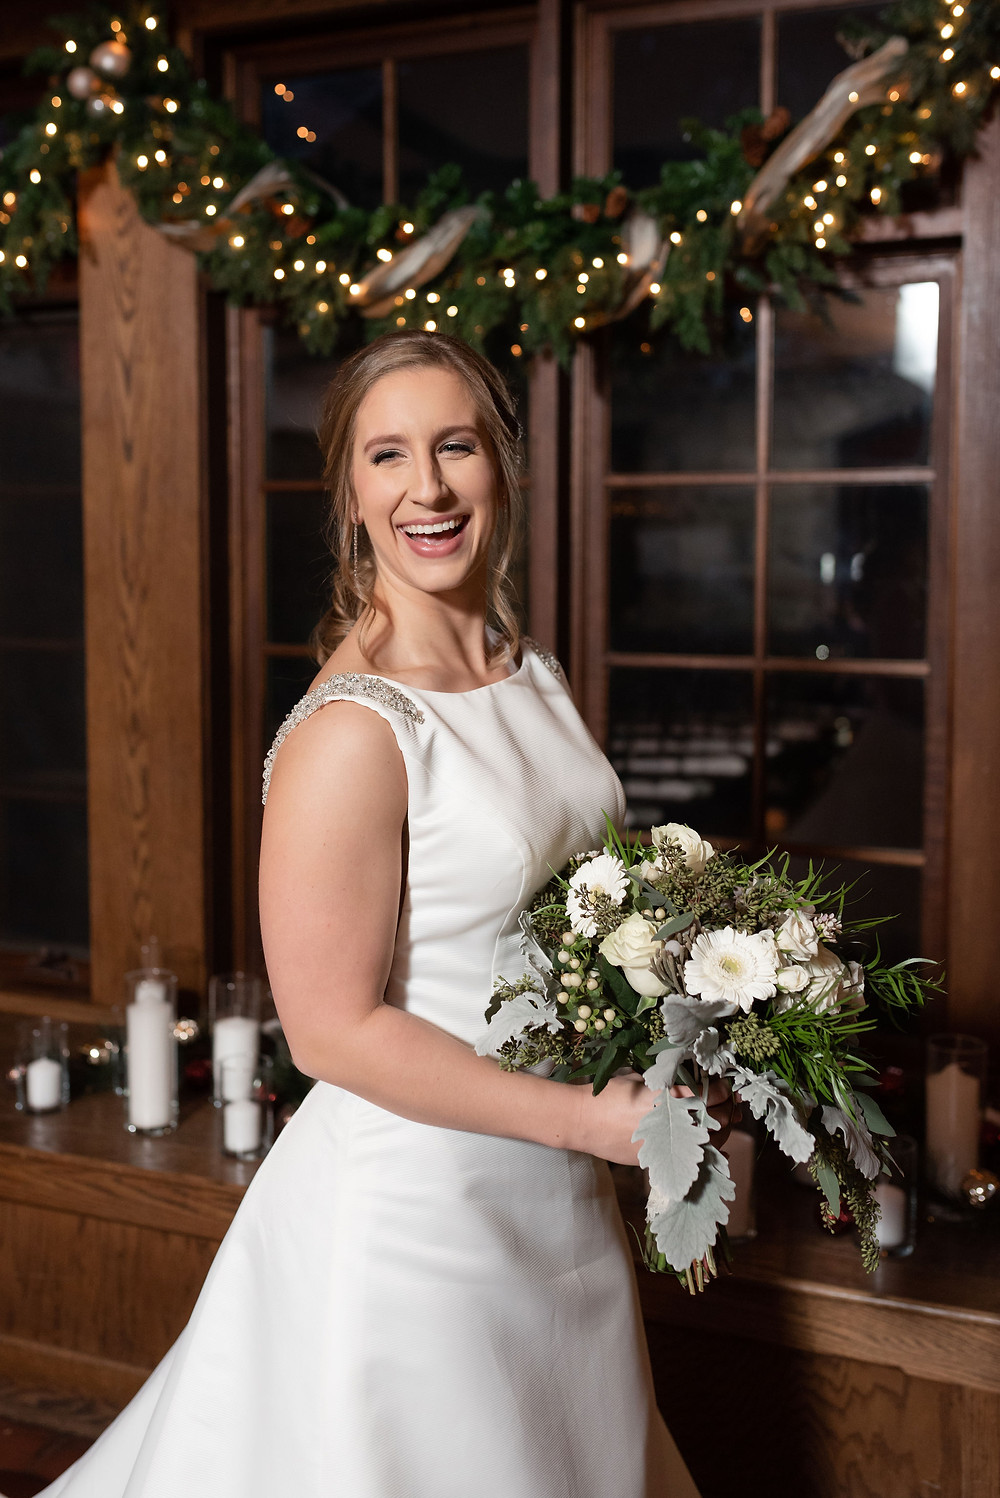 bridal portrait. bride smiling really big. flash photography is used since it is a winter wedding and it gets dark early